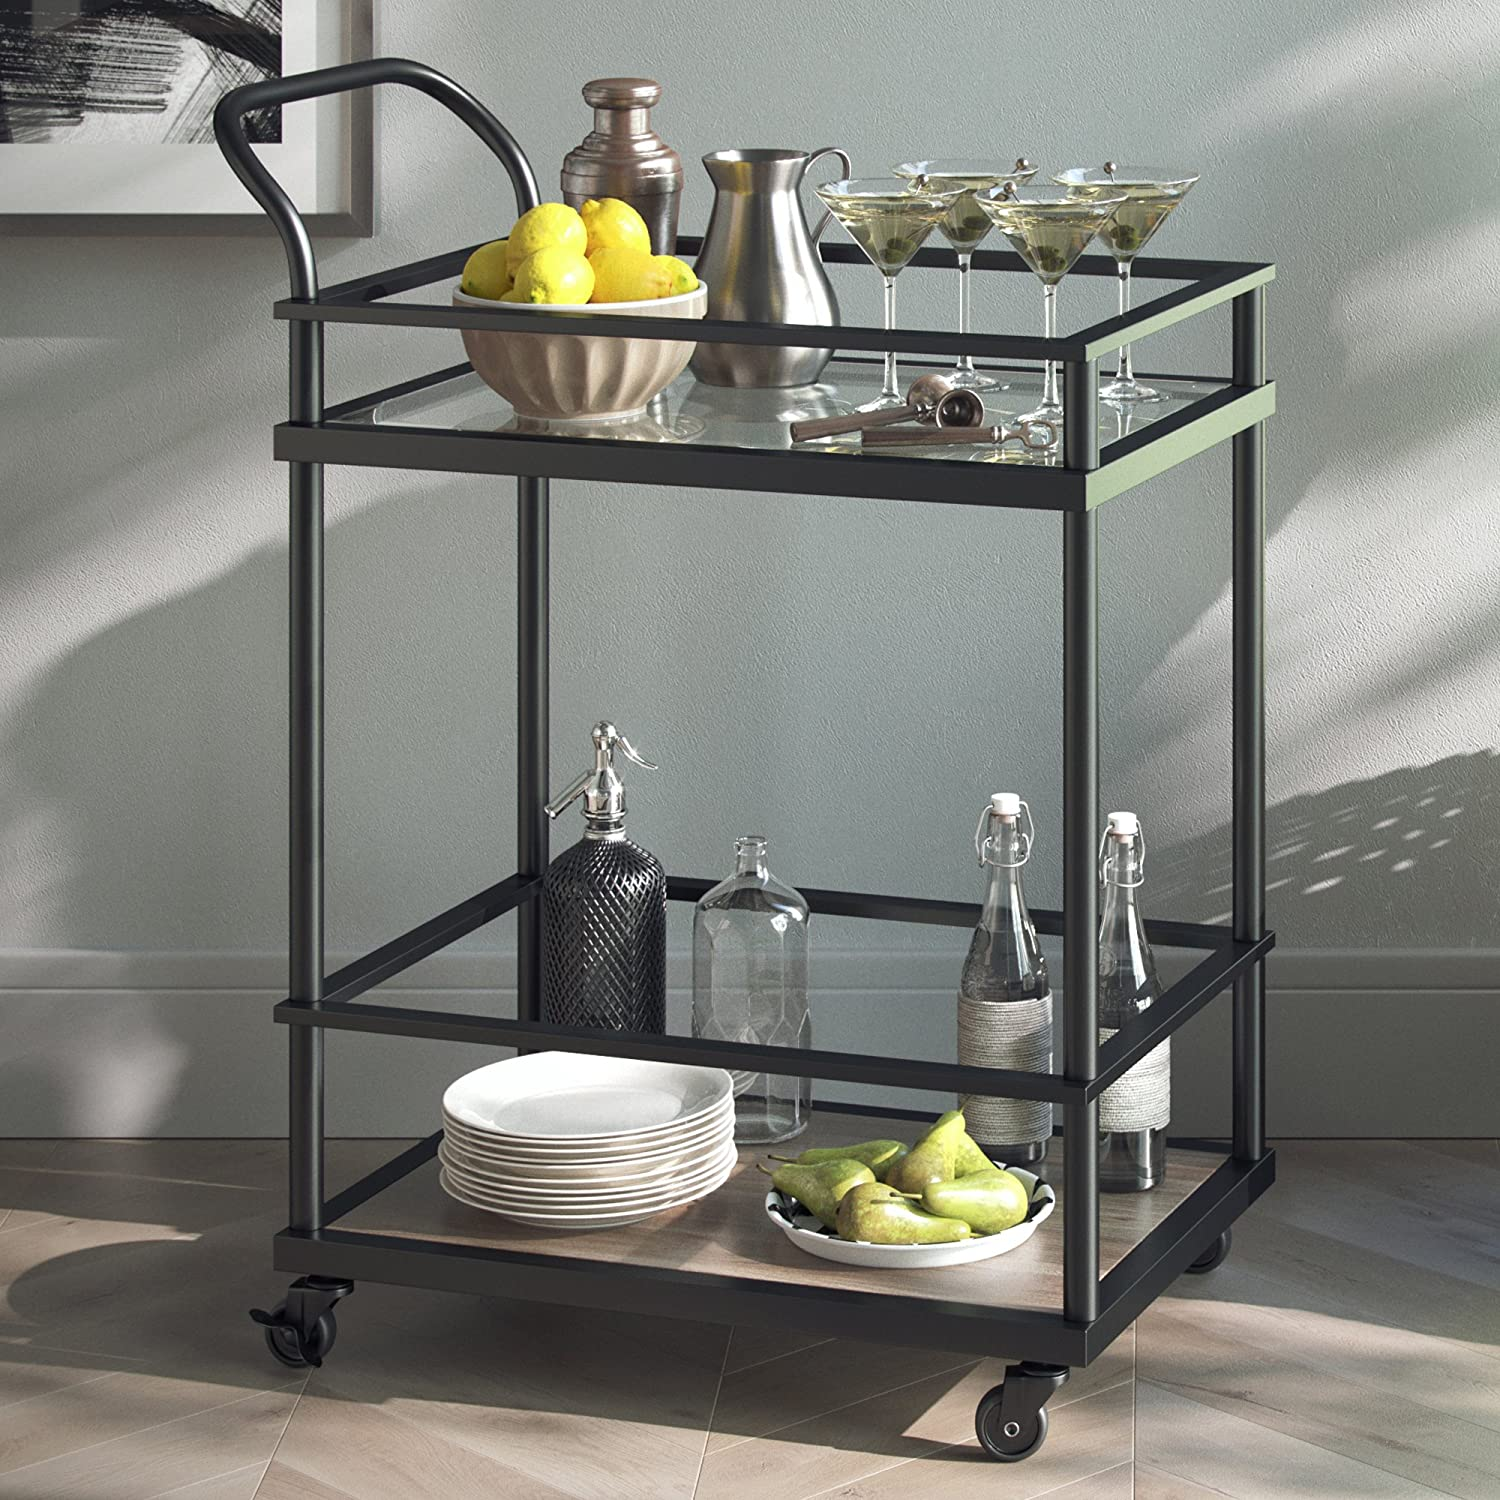 Nathan James 45001 Carter Rolling Bar and Serving Cart 2-Tiered Glass and Metal, Black